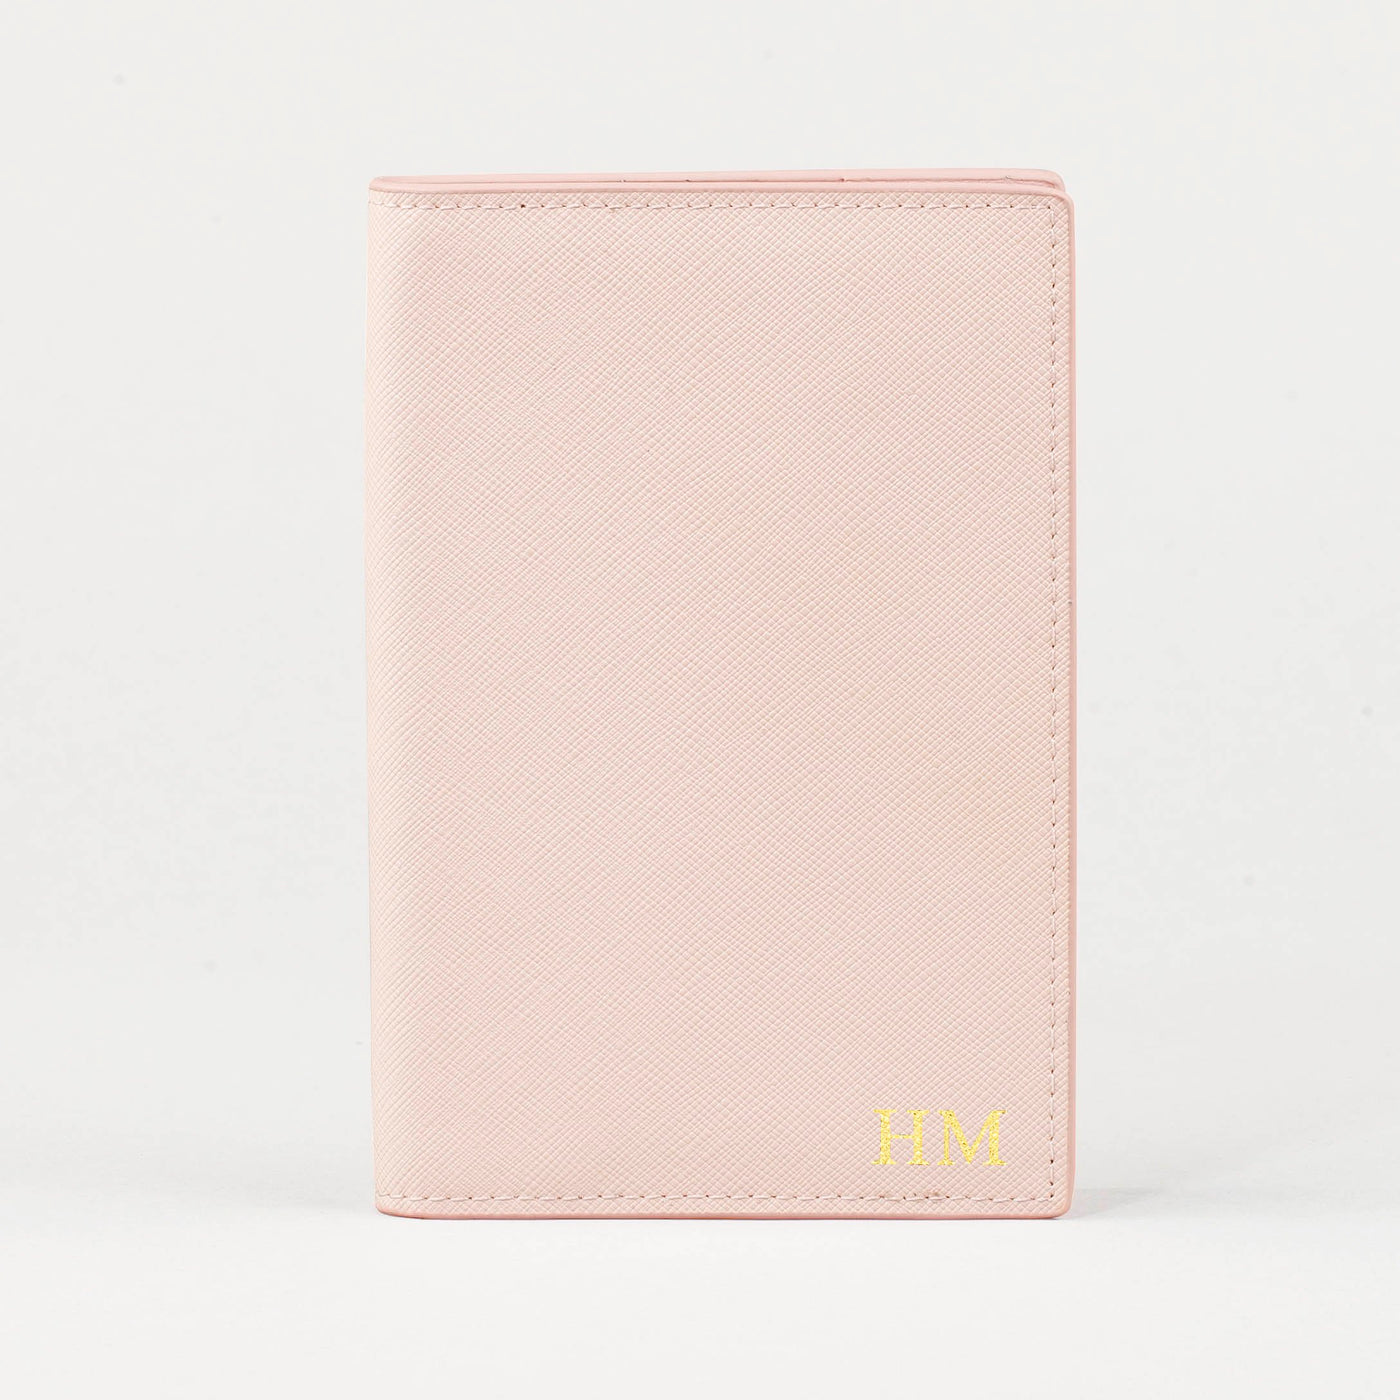 Personalised Leather Passport Cover - Nude